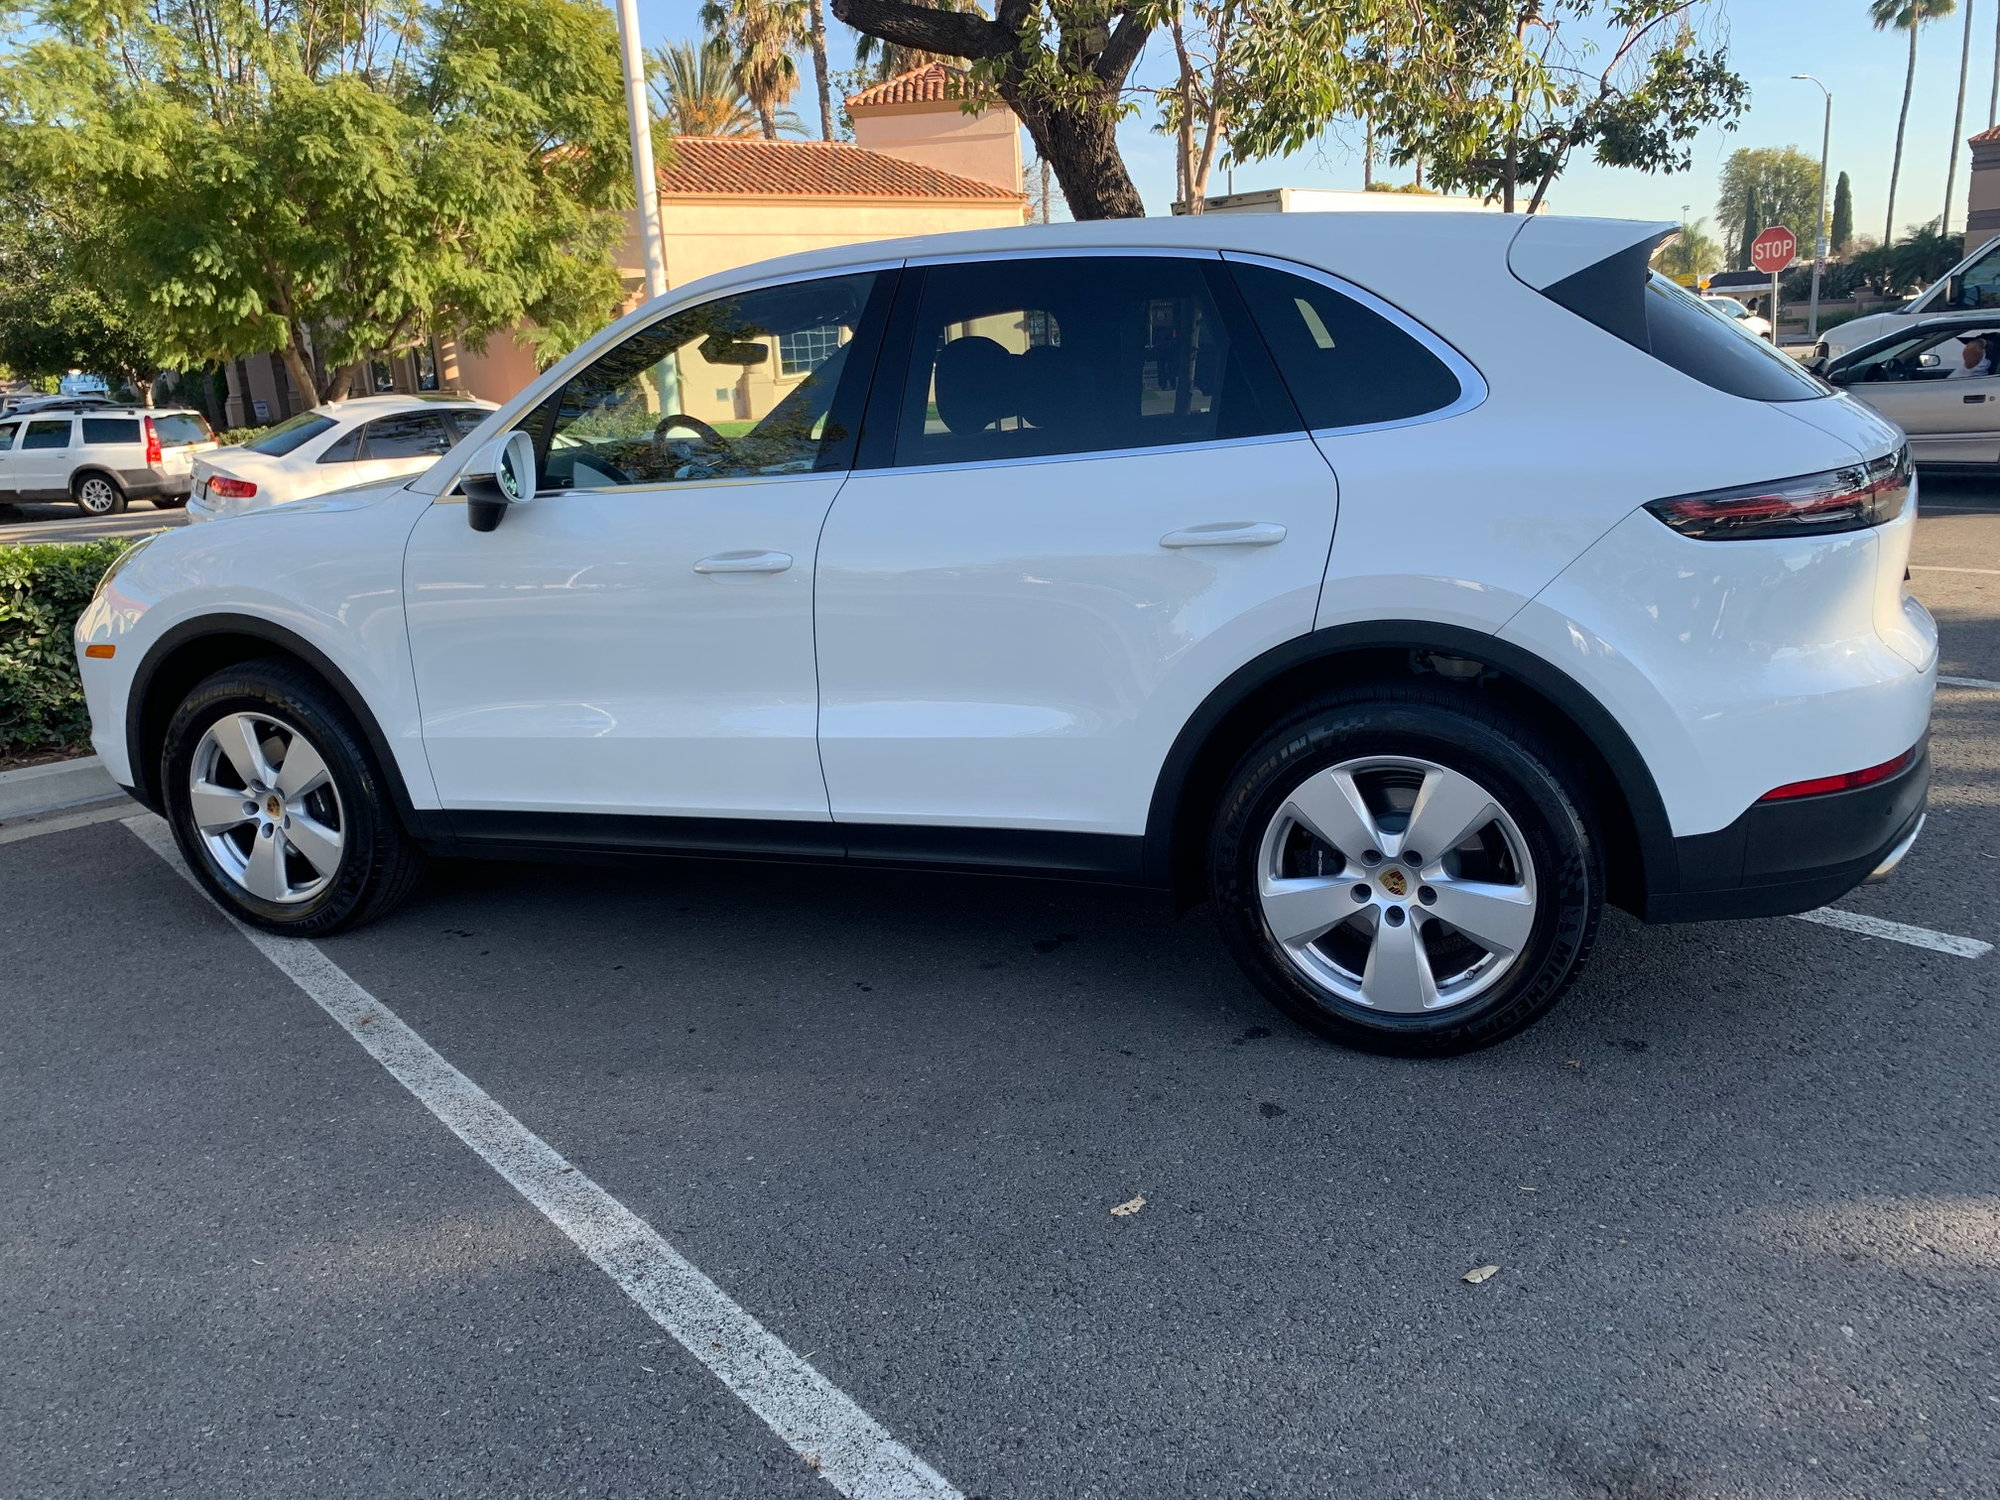 2020 Porsche Cayenne White With Black Interior 1 500 Miles Rennlist Porsche Discussion Forums